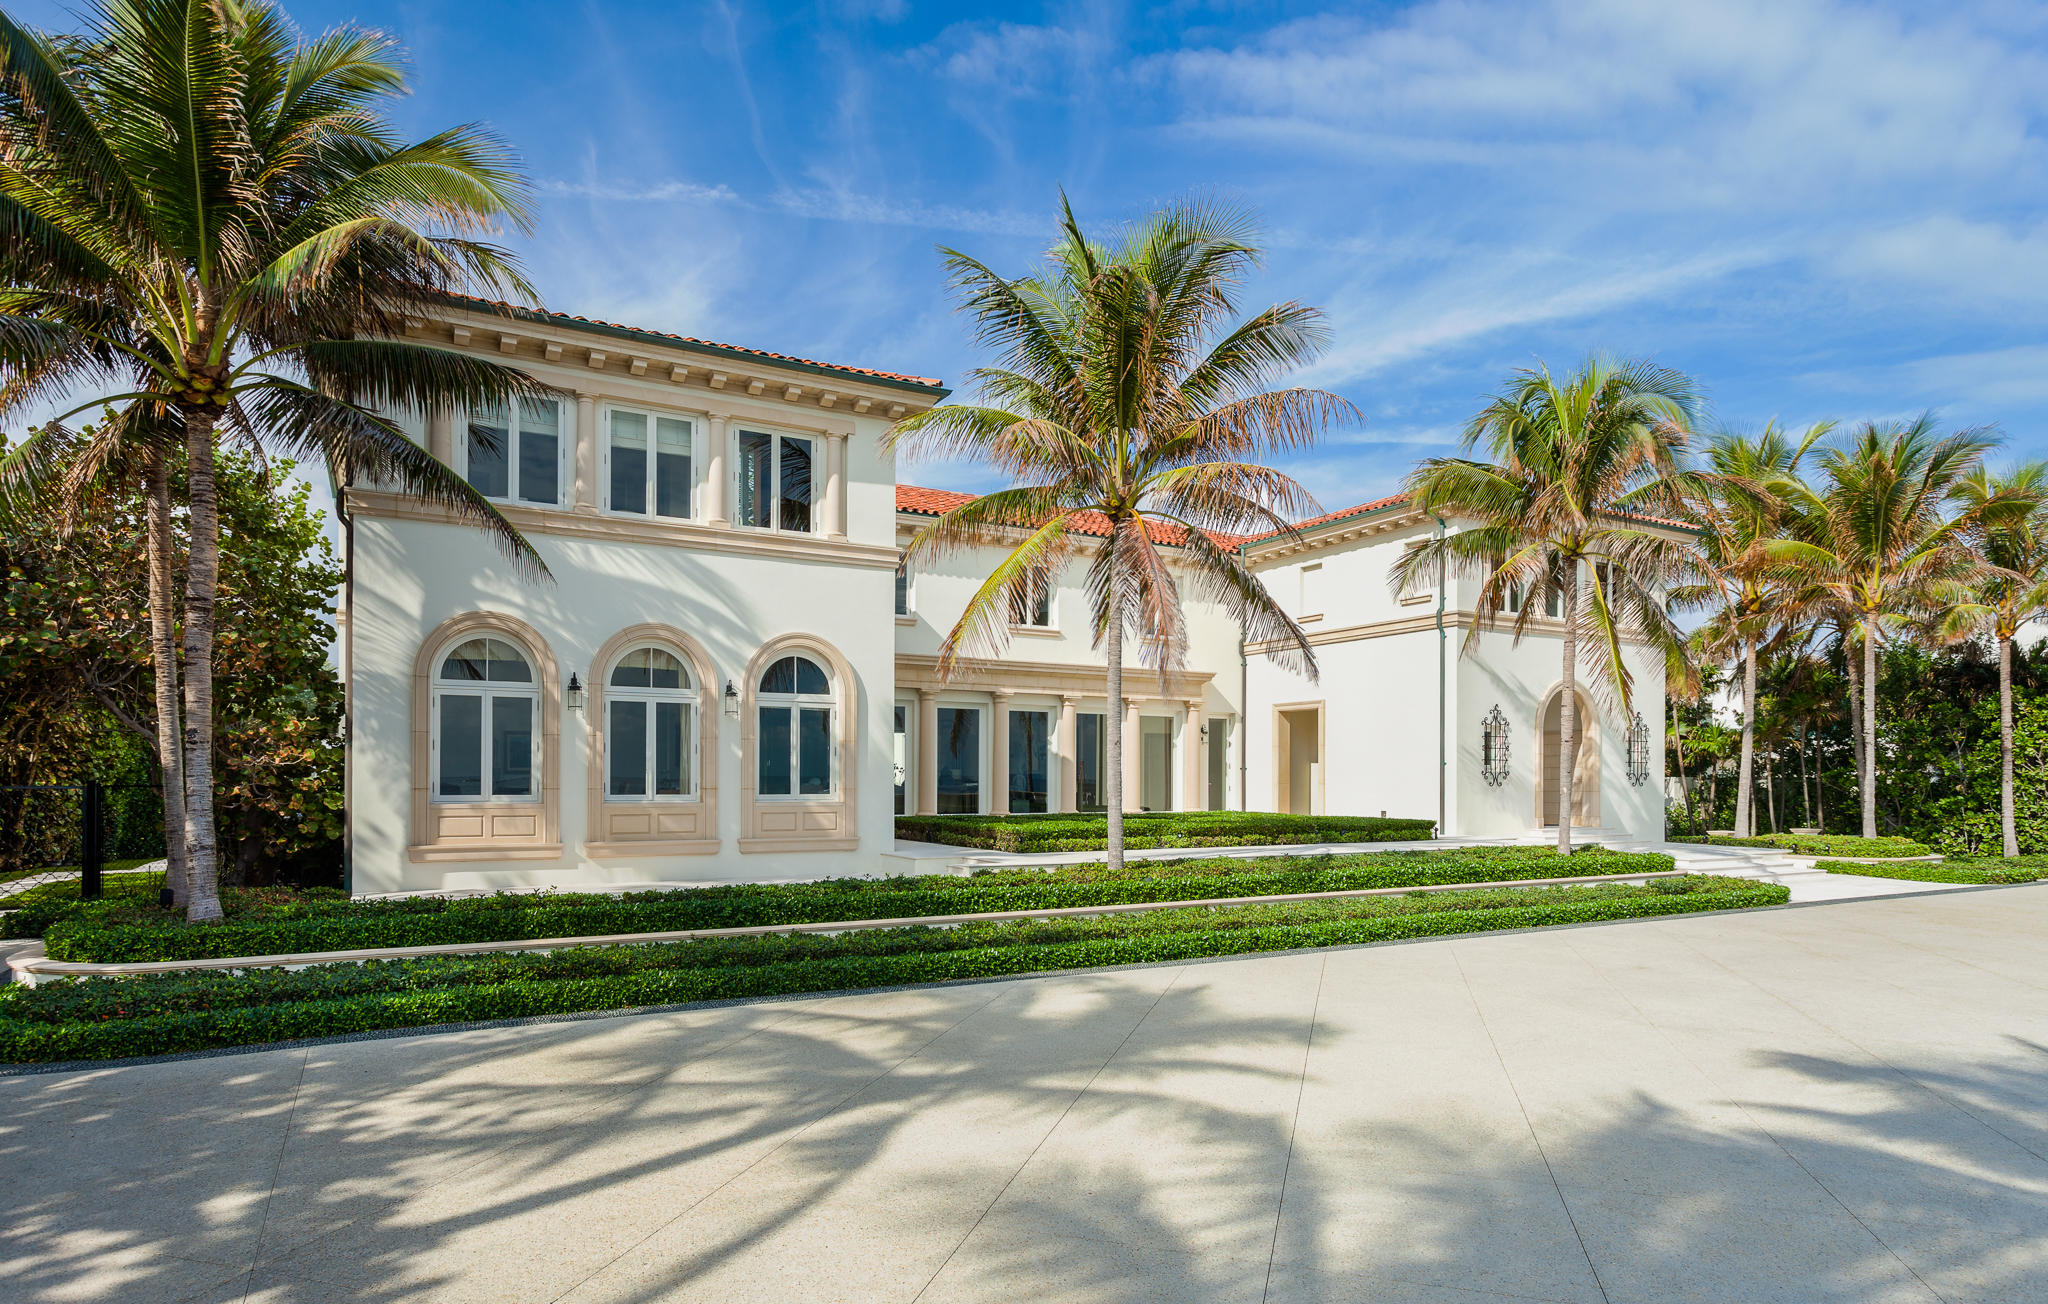 New Home for sale at 1744 Ocean Boulevard in Palm Beach